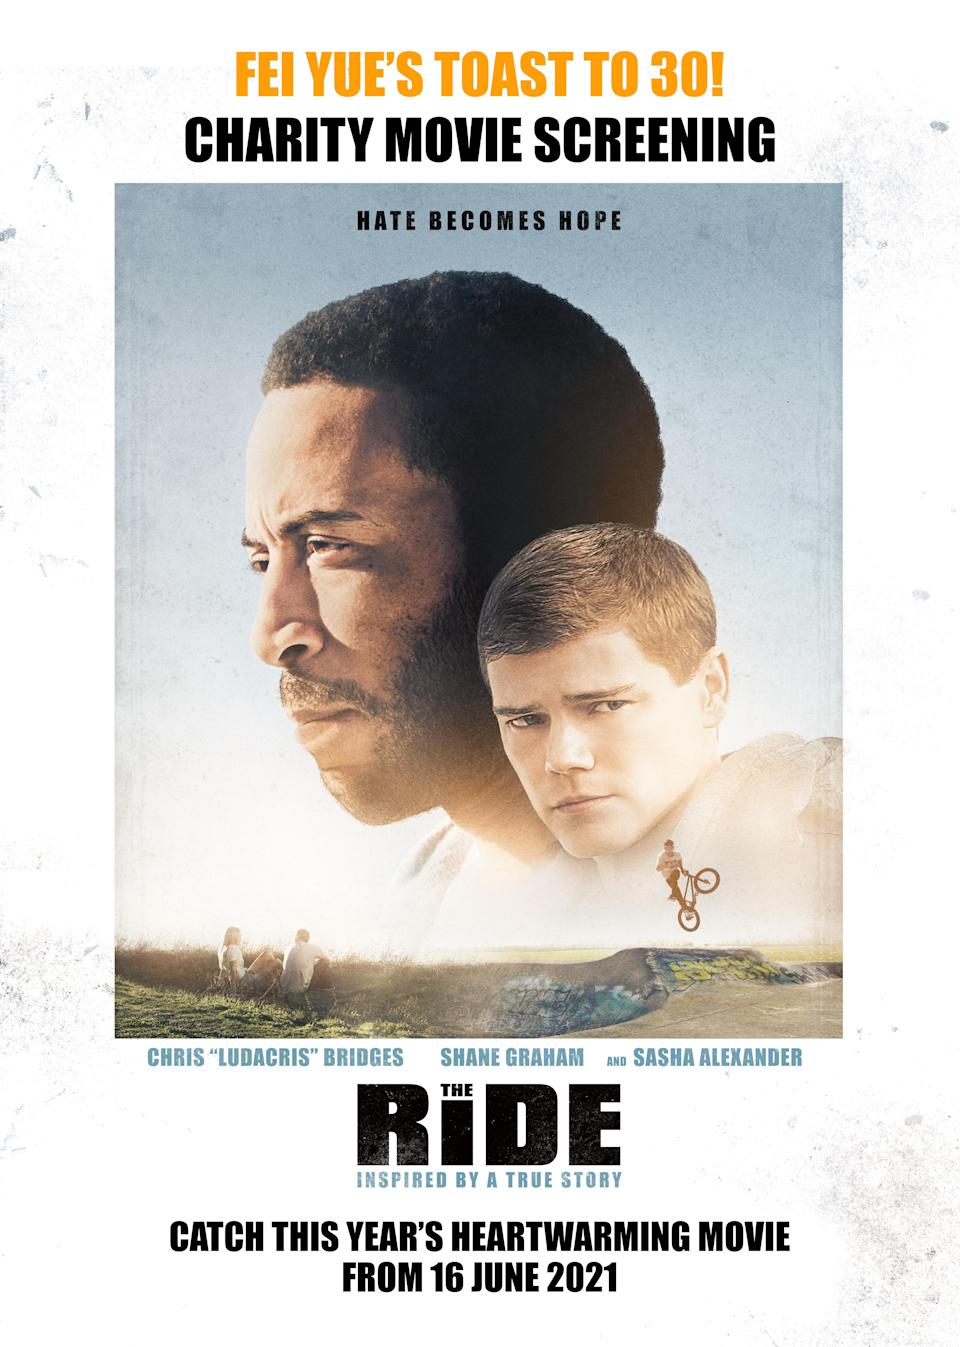 The Ride is an inspirational story of real-life BMX star John Buultjens.